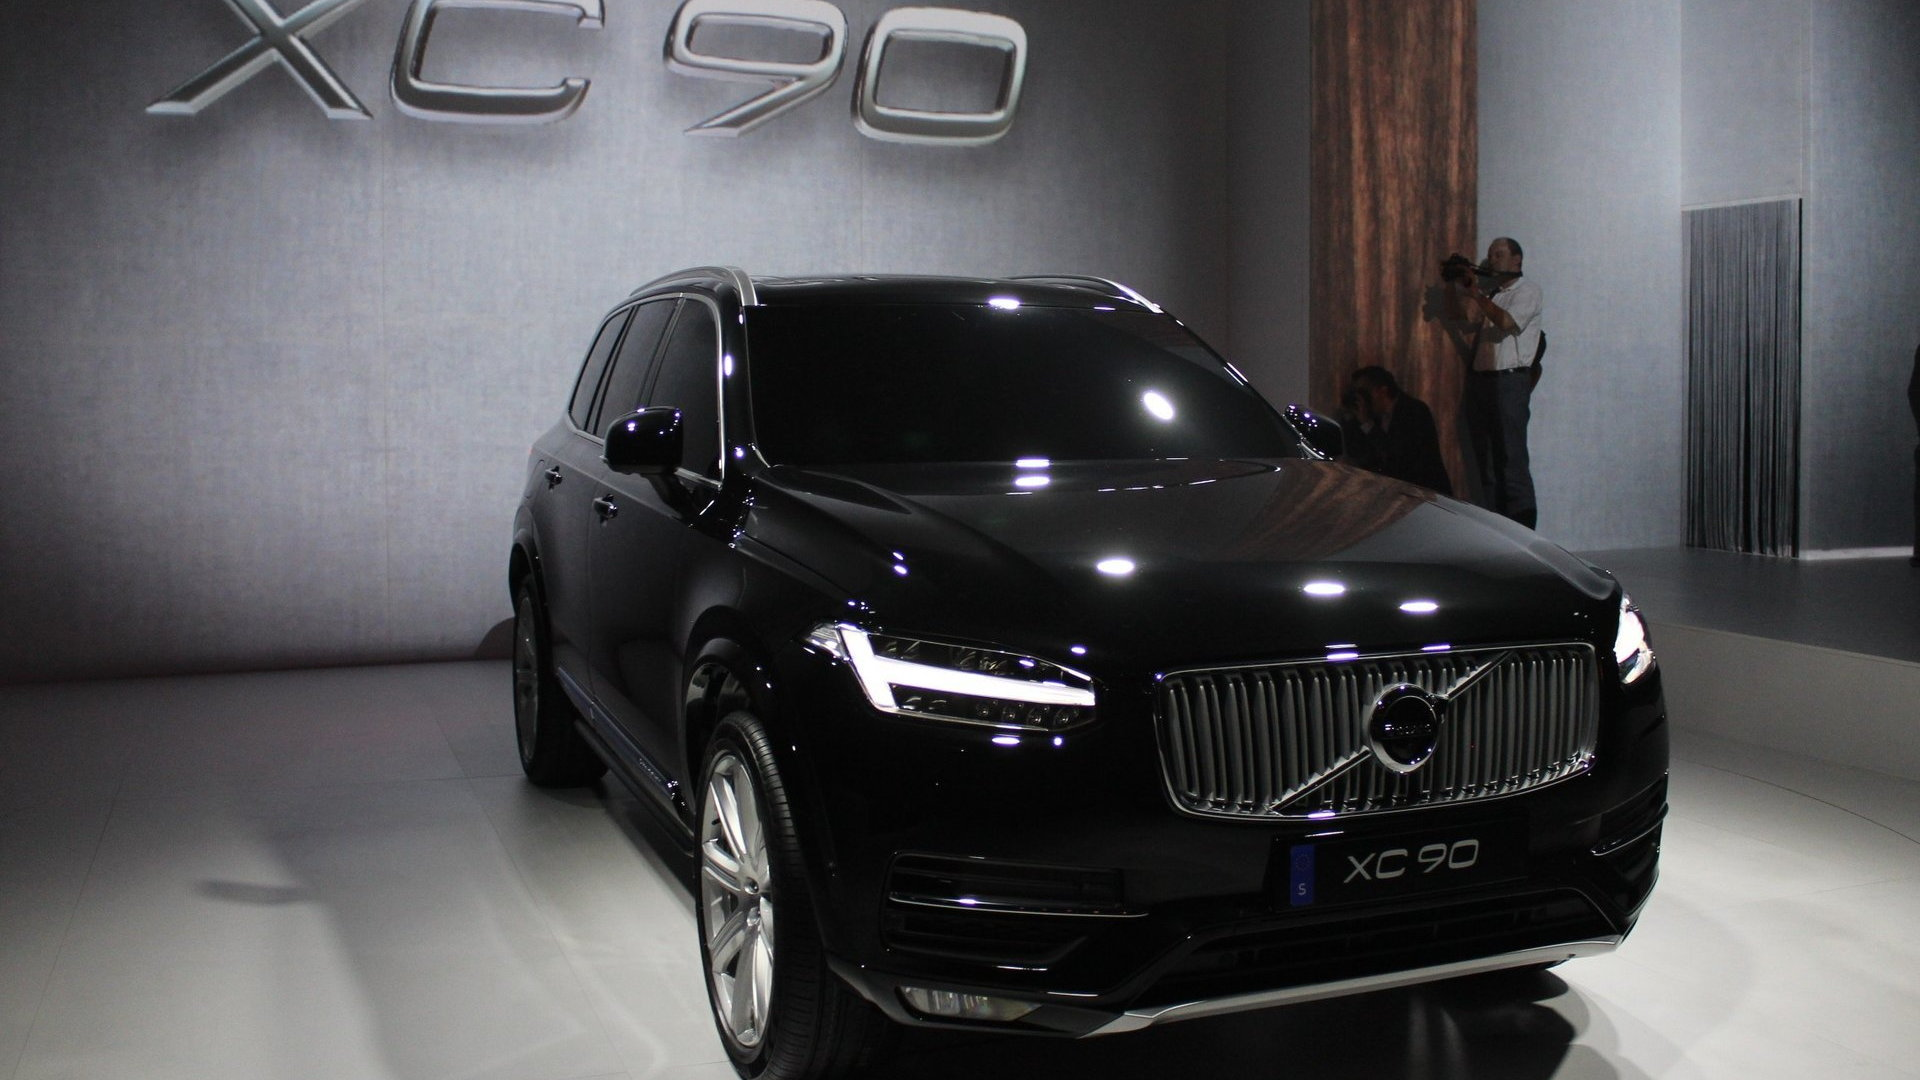 2016 Volvo XC90  -  world premiere, Stockholm, Sweden  -  August 2014